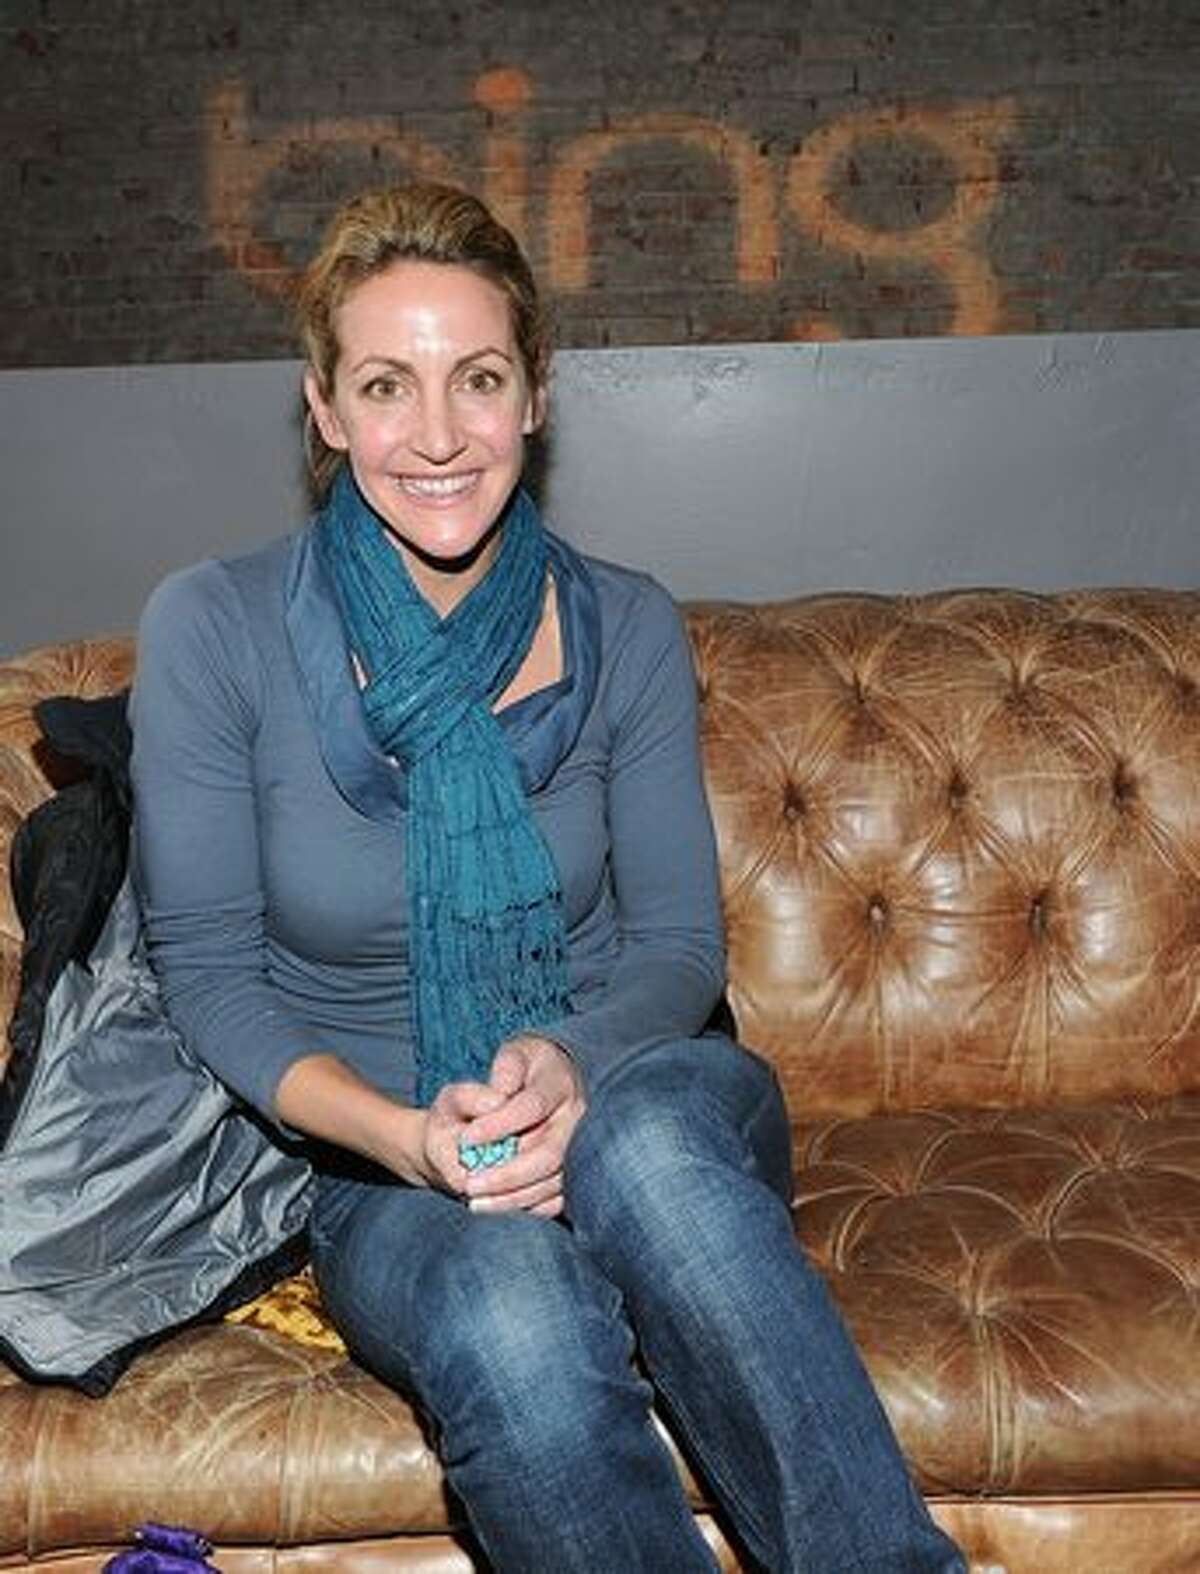 Television personality Summer Sanders attends the Bing Bar on January 21, 2011 in Park City, Utah.